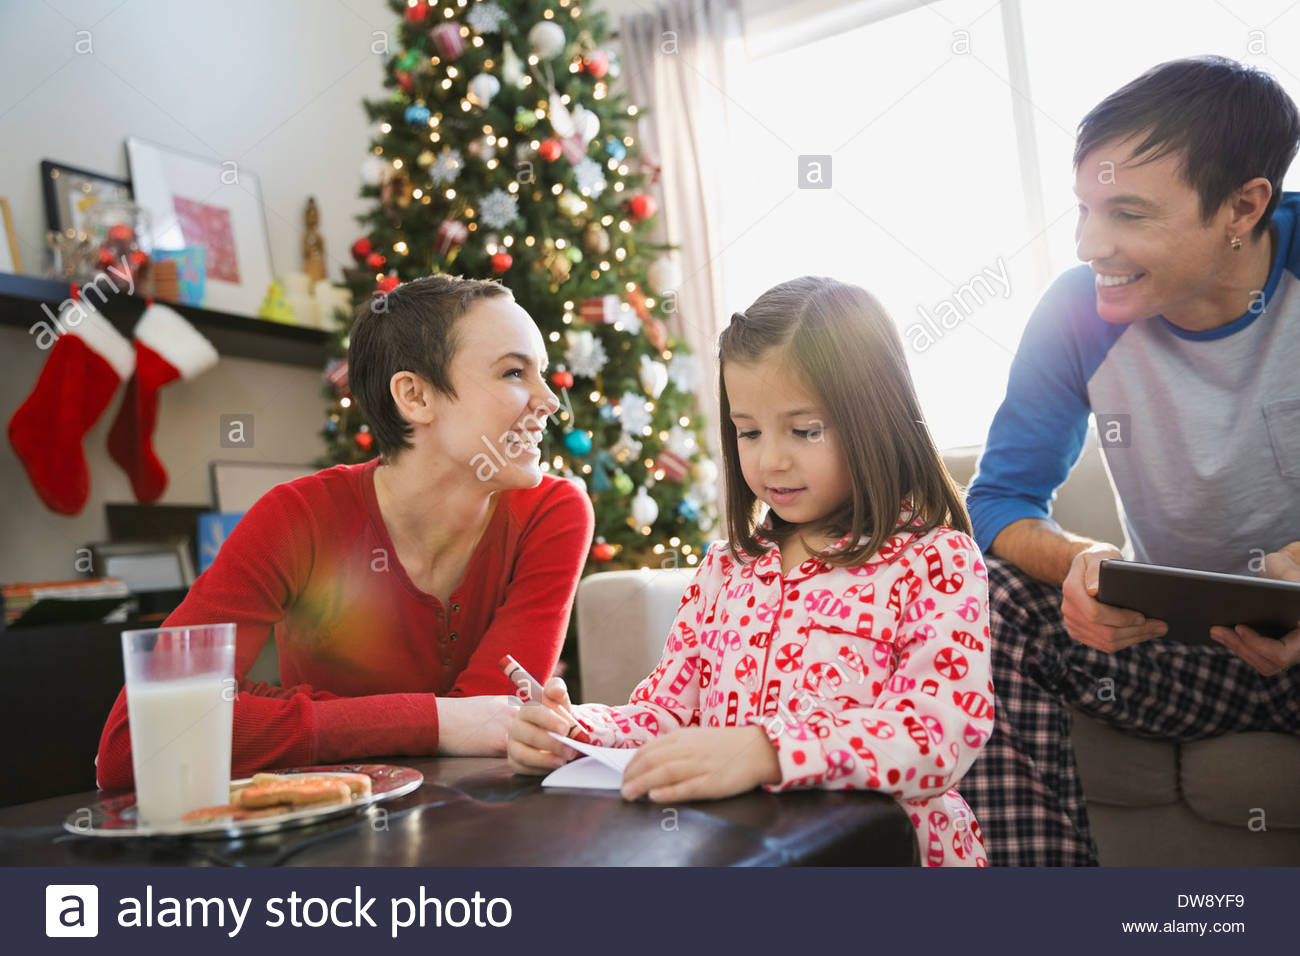 Girl writing letter to Santa Claus - Stock Image